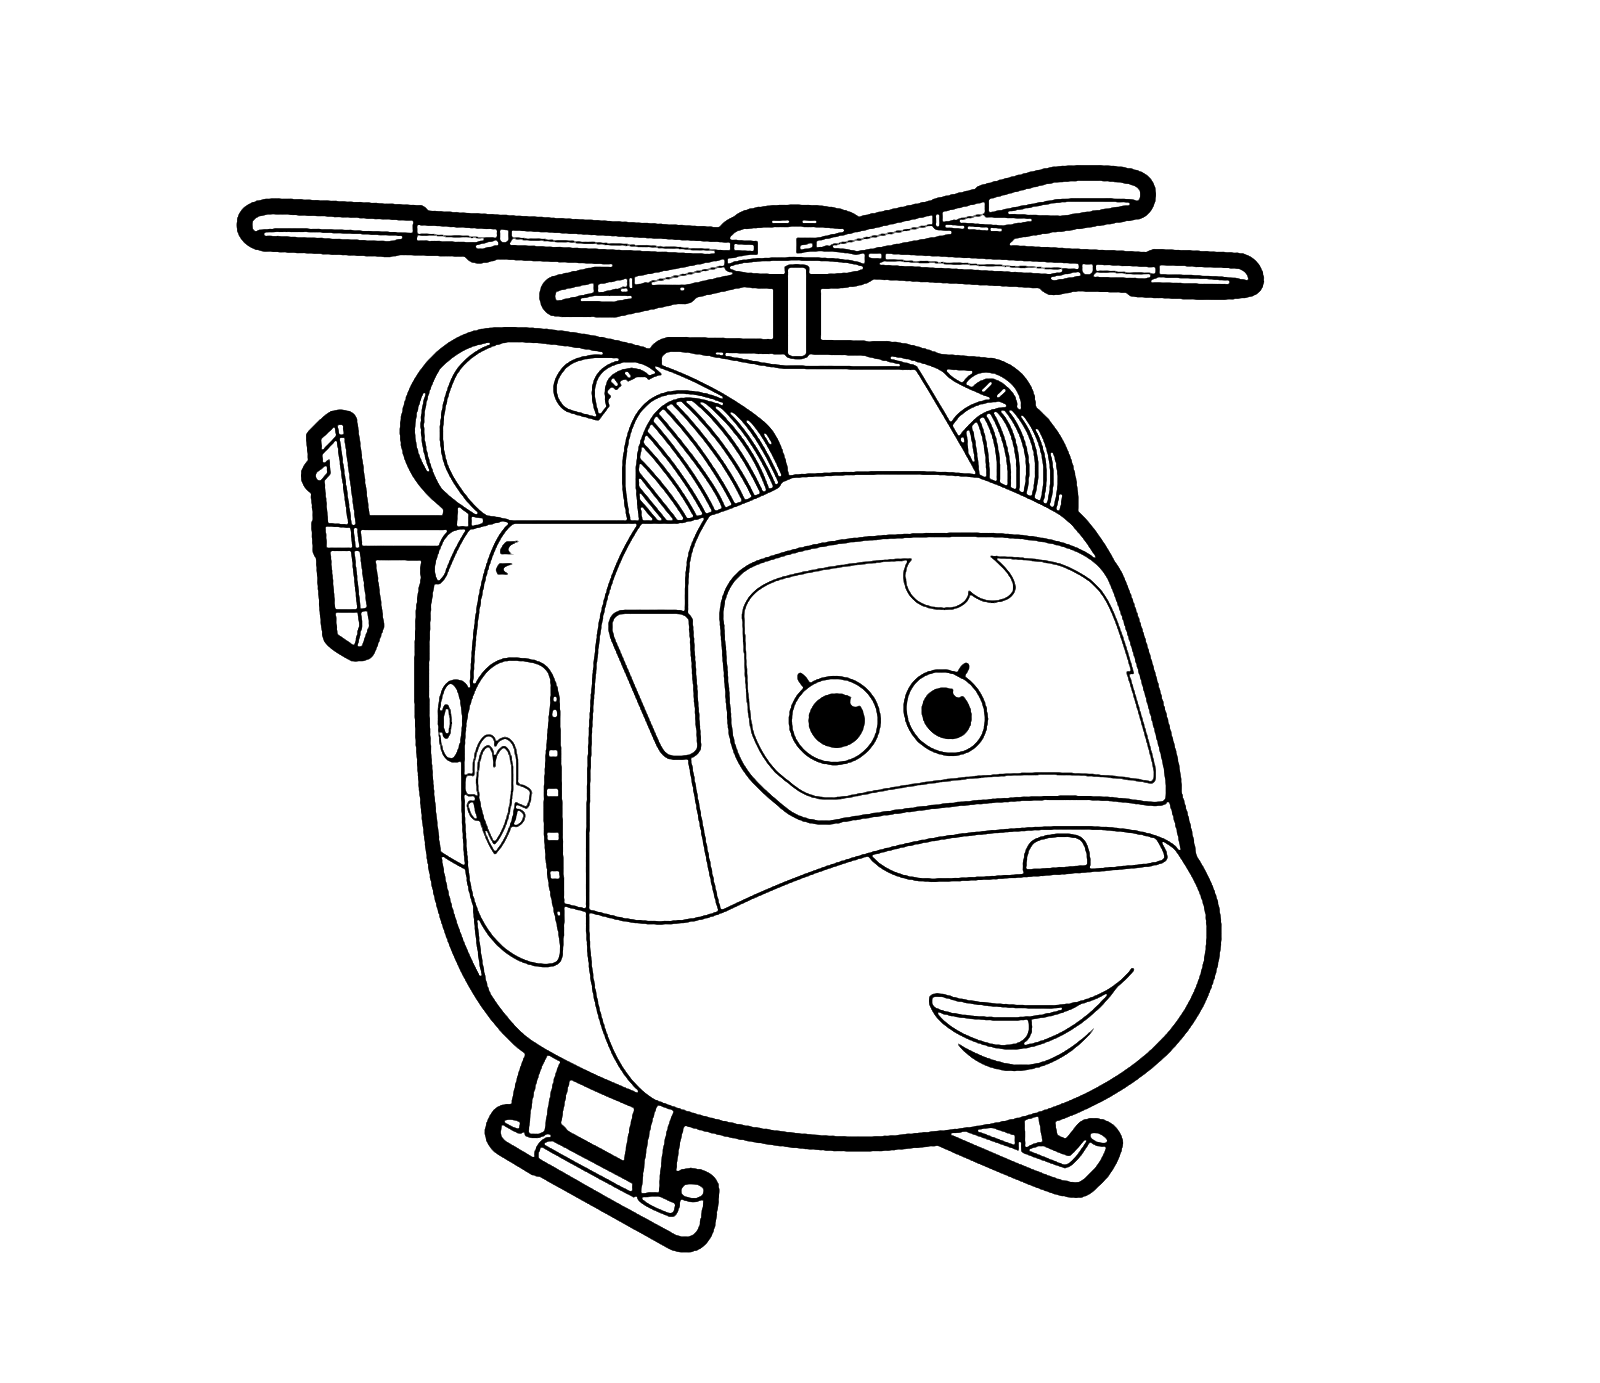 Super wings dizzy l 39 elicotterina pronta a decollare for Disegni da colorare super wings